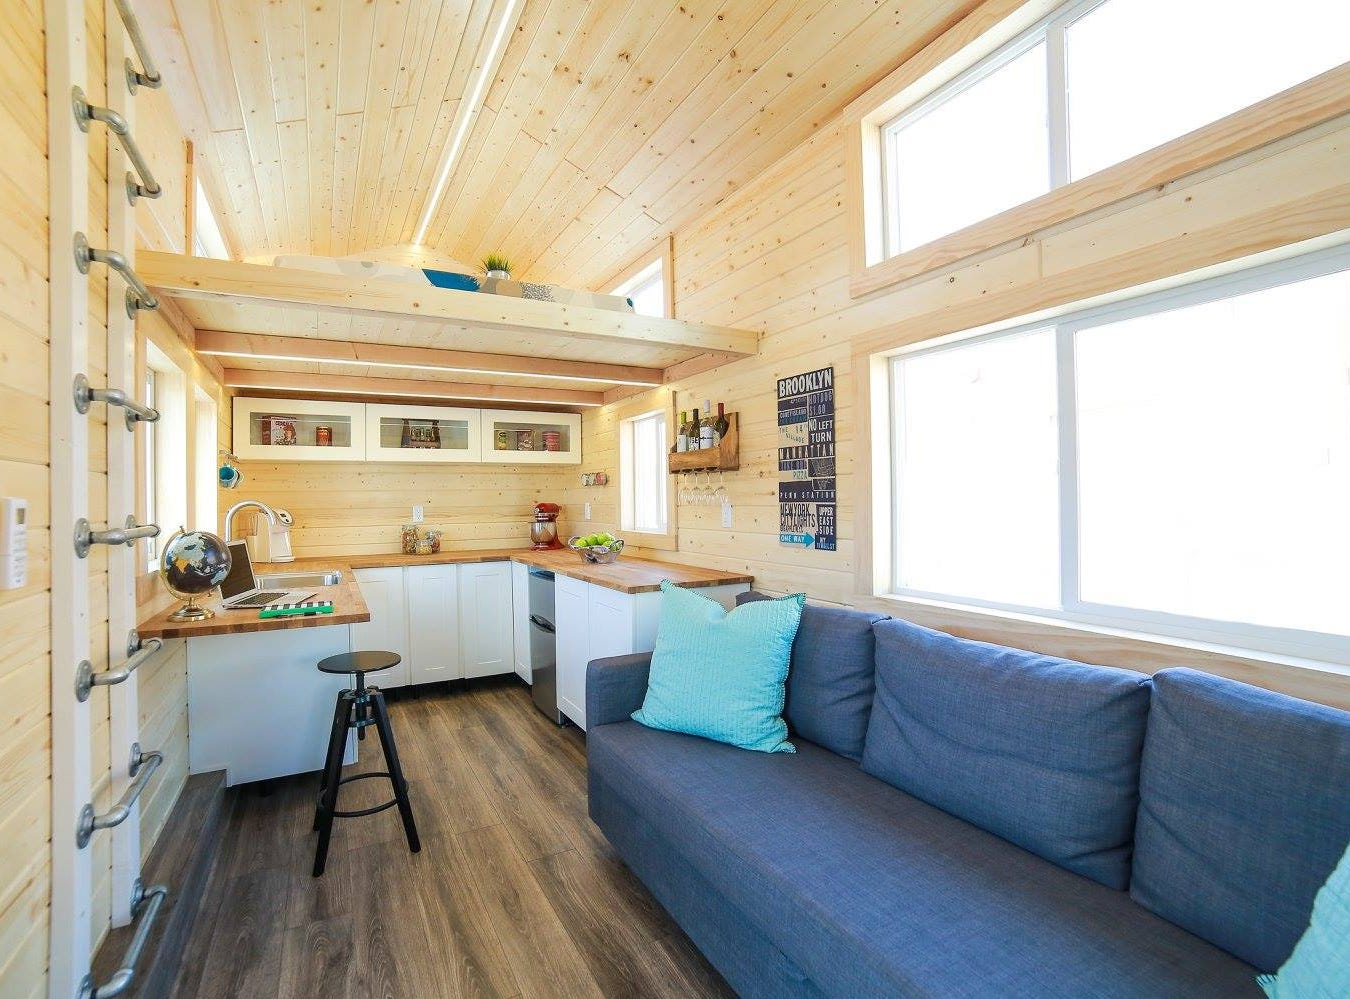 A view of the living room leading into the kitchen inside a tiny home.